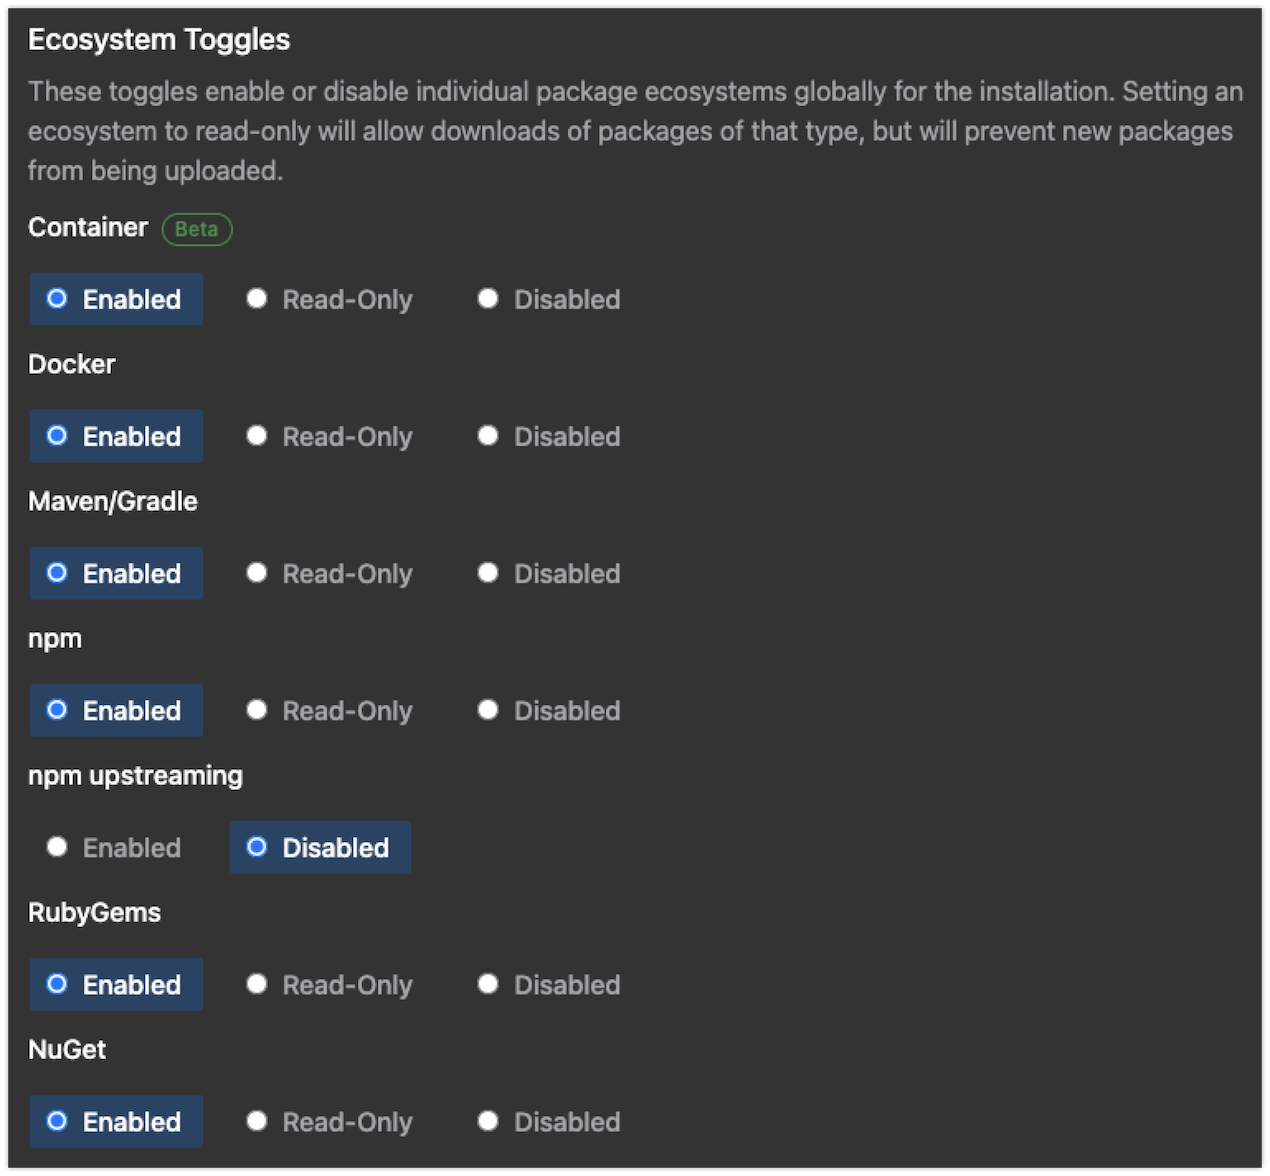 Ecosystem toggles